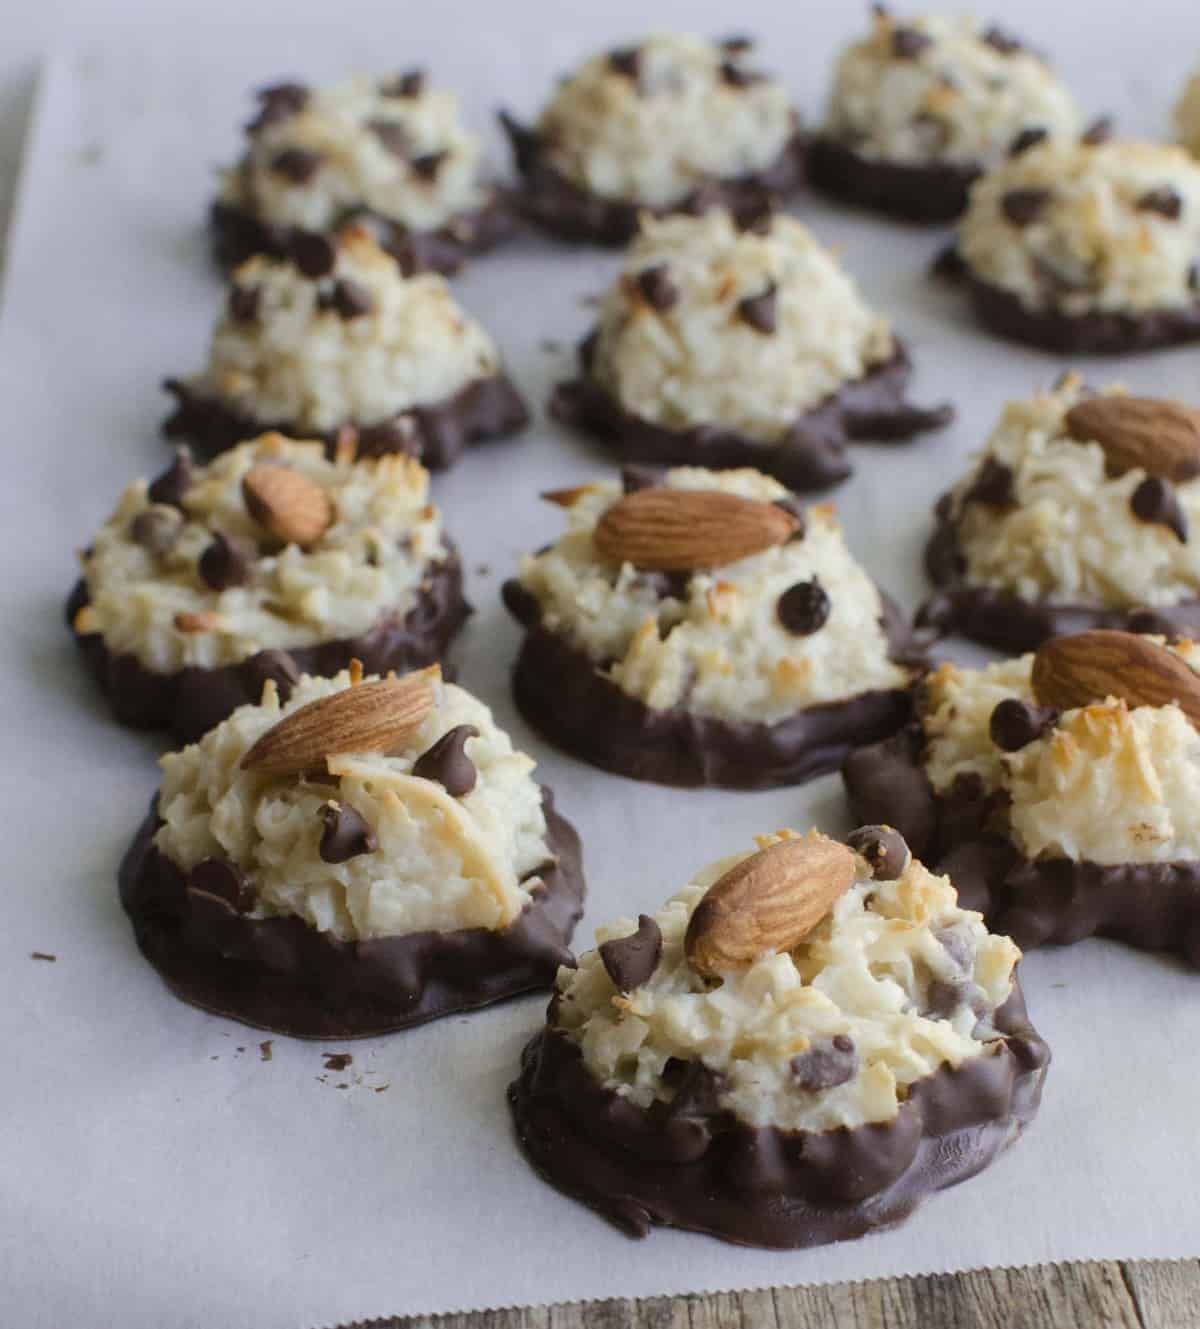 chocolate dipped macaroons topped with mini chocolate chips and an almond